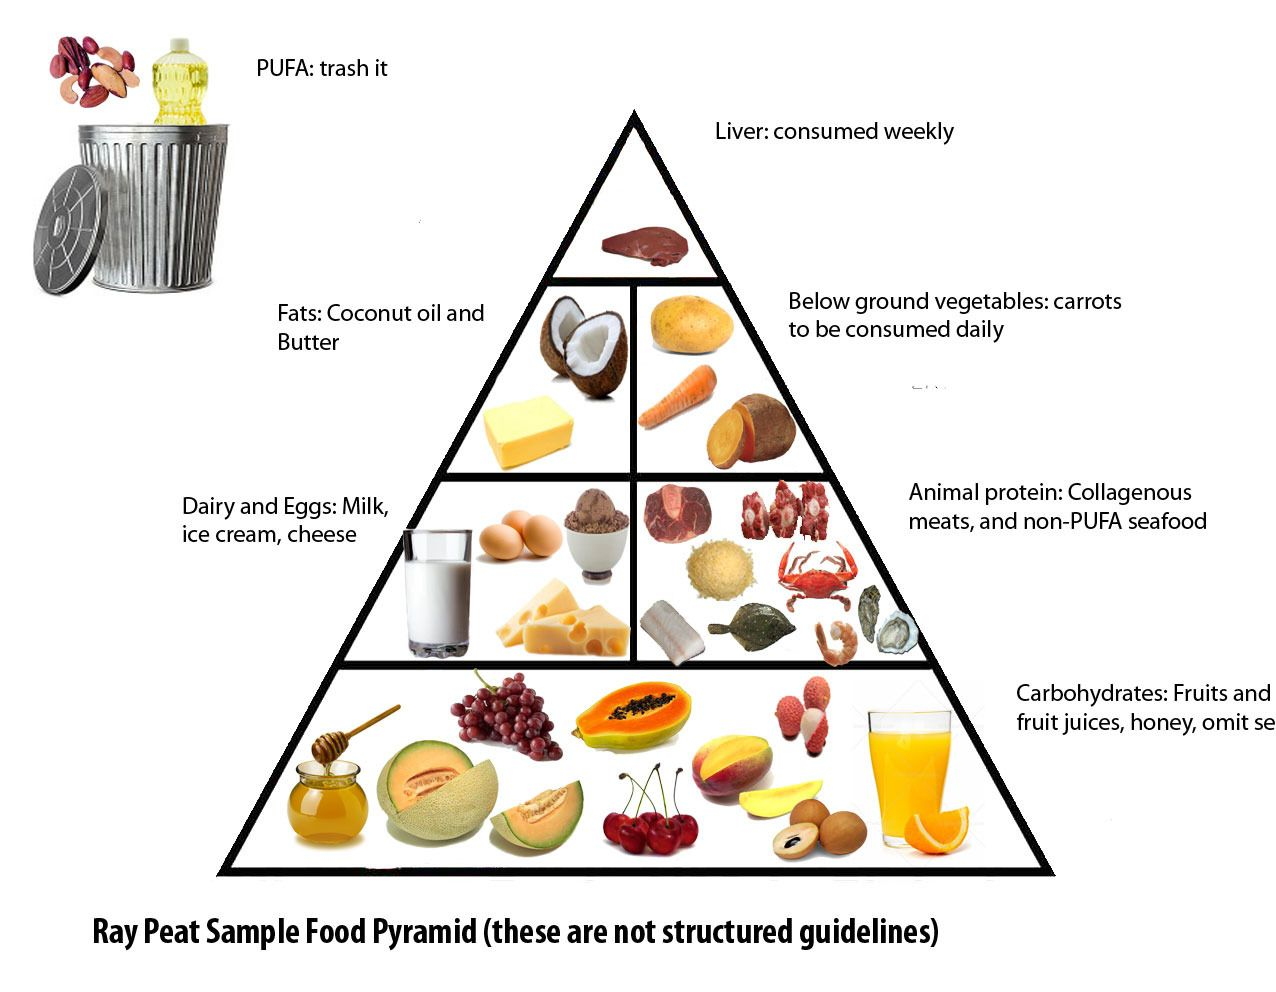 Ray Peat Pyramid For More Information On The Ray Peat Diet Go To Www Biochemnordic Com Paleo Food Pyramid Food Eat